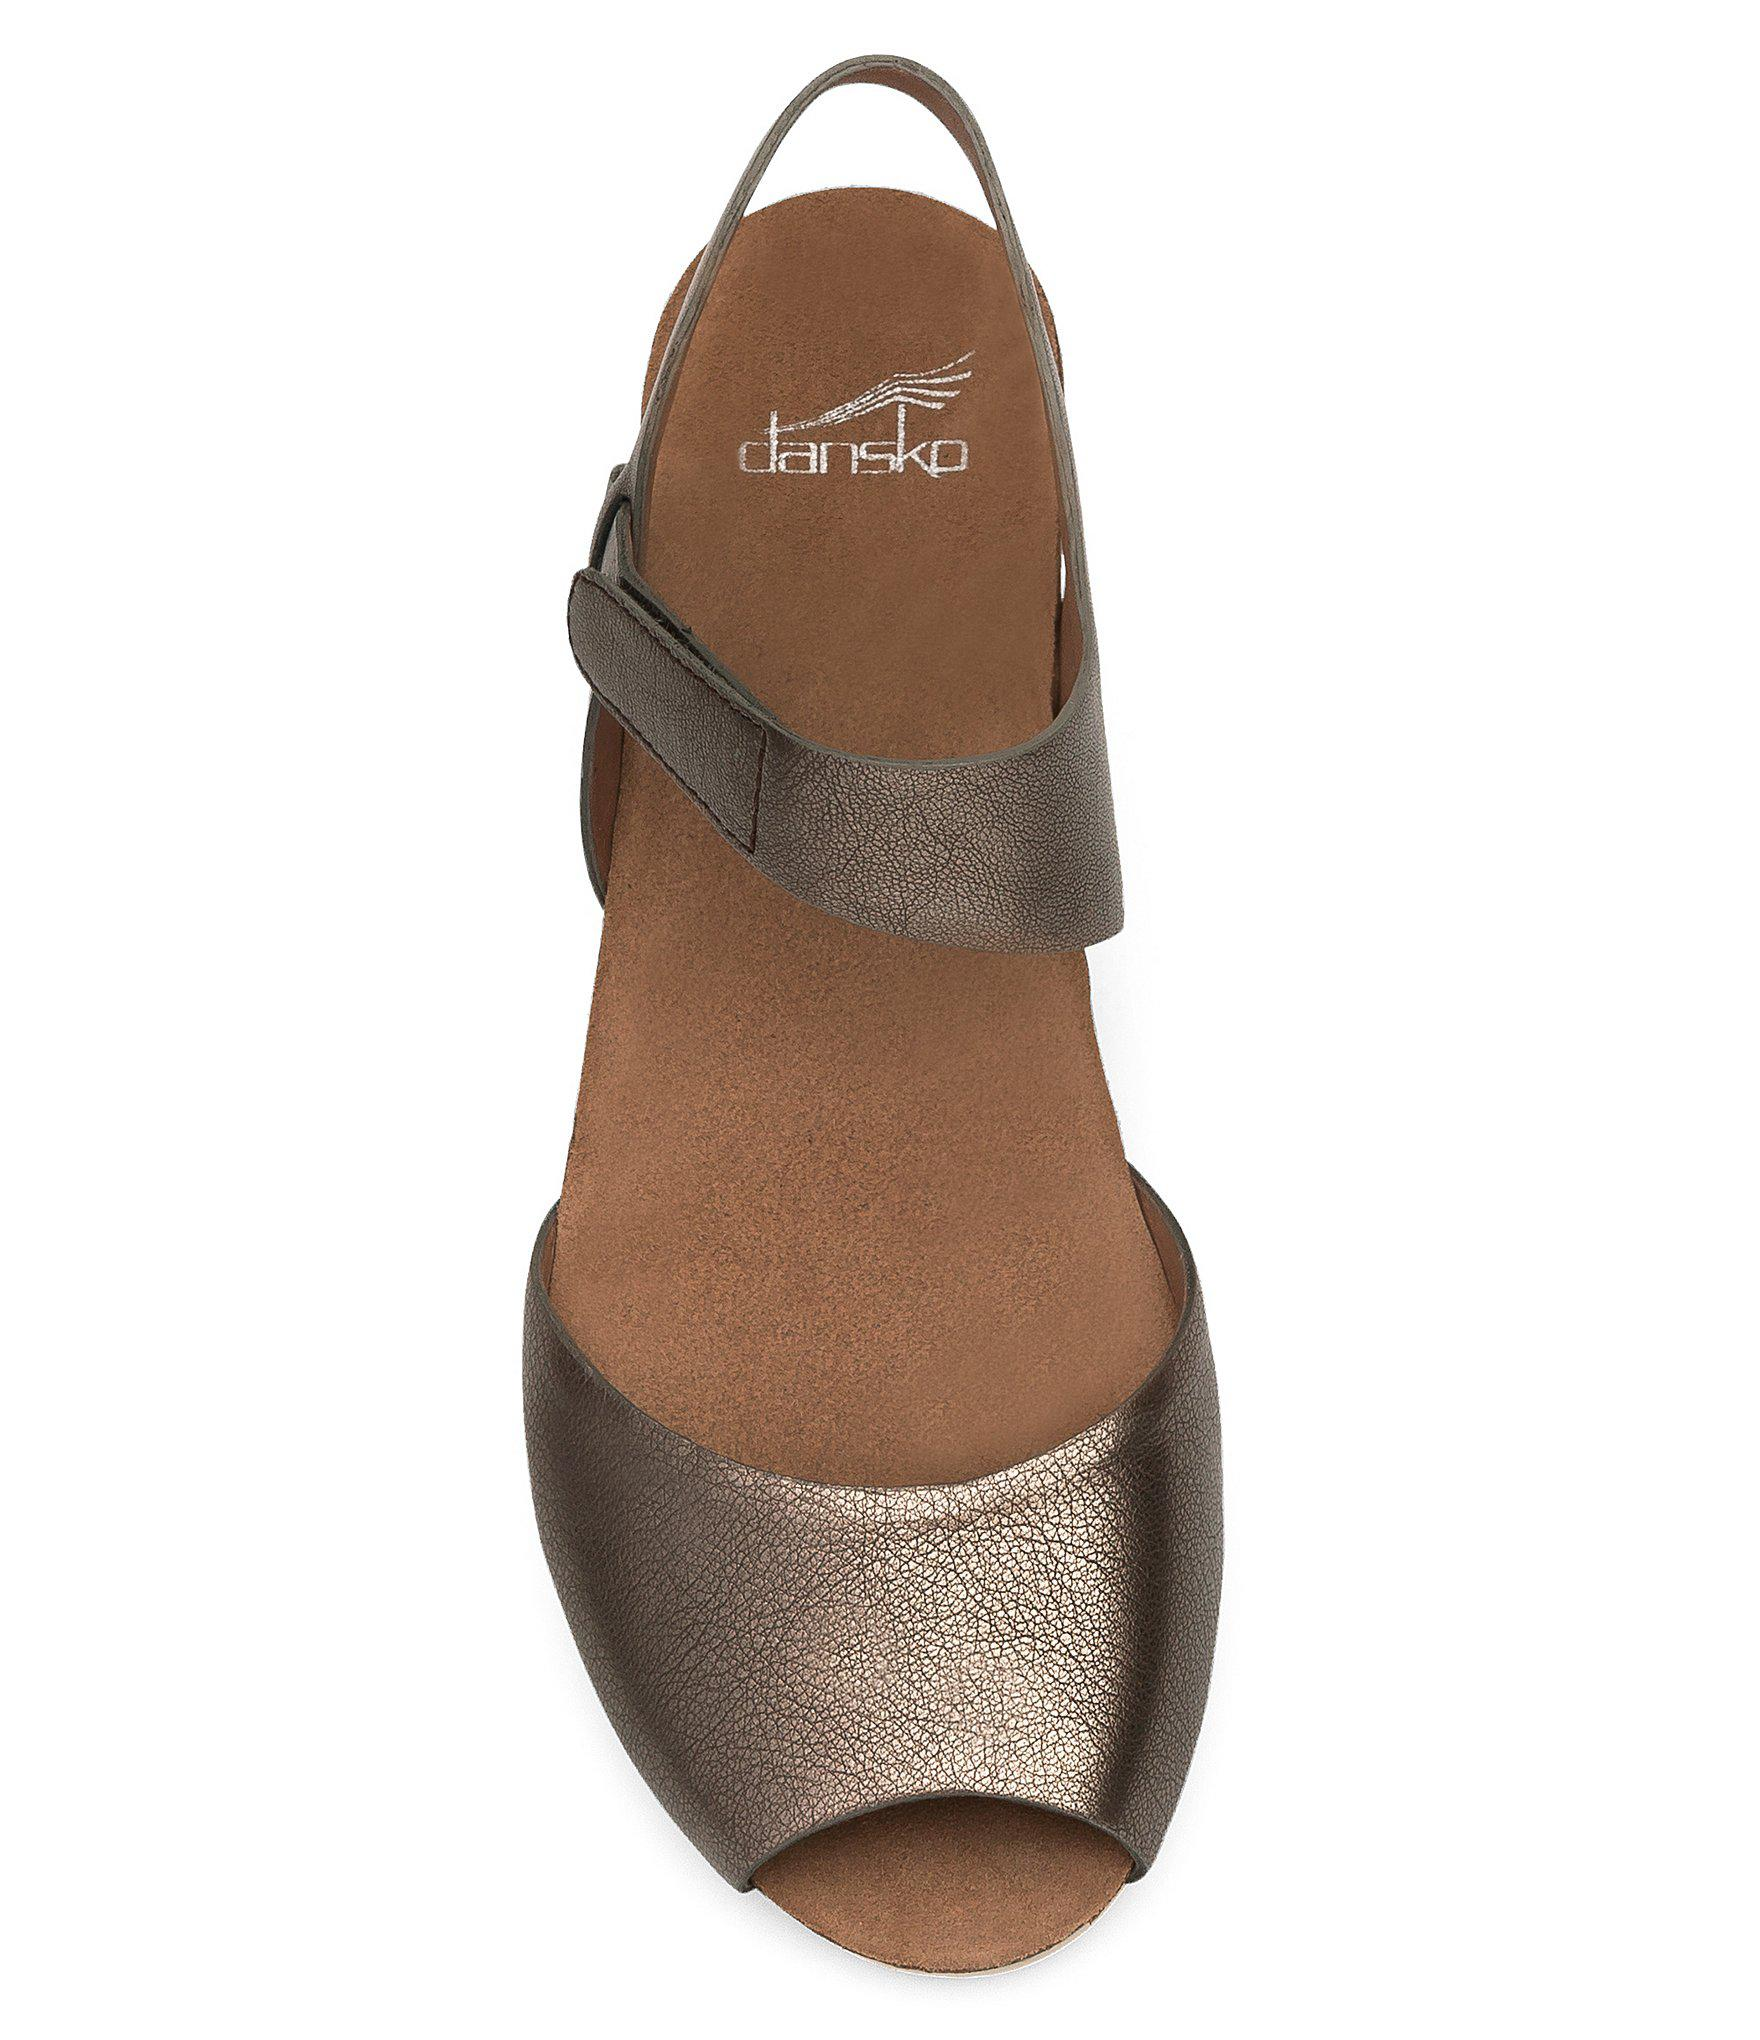 e78a2e54c043 Dansko - Multicolor Vera Metallic Nappa Leather Banded Ankle Strap Wedge  Sandals - Lyst. View fullscreen